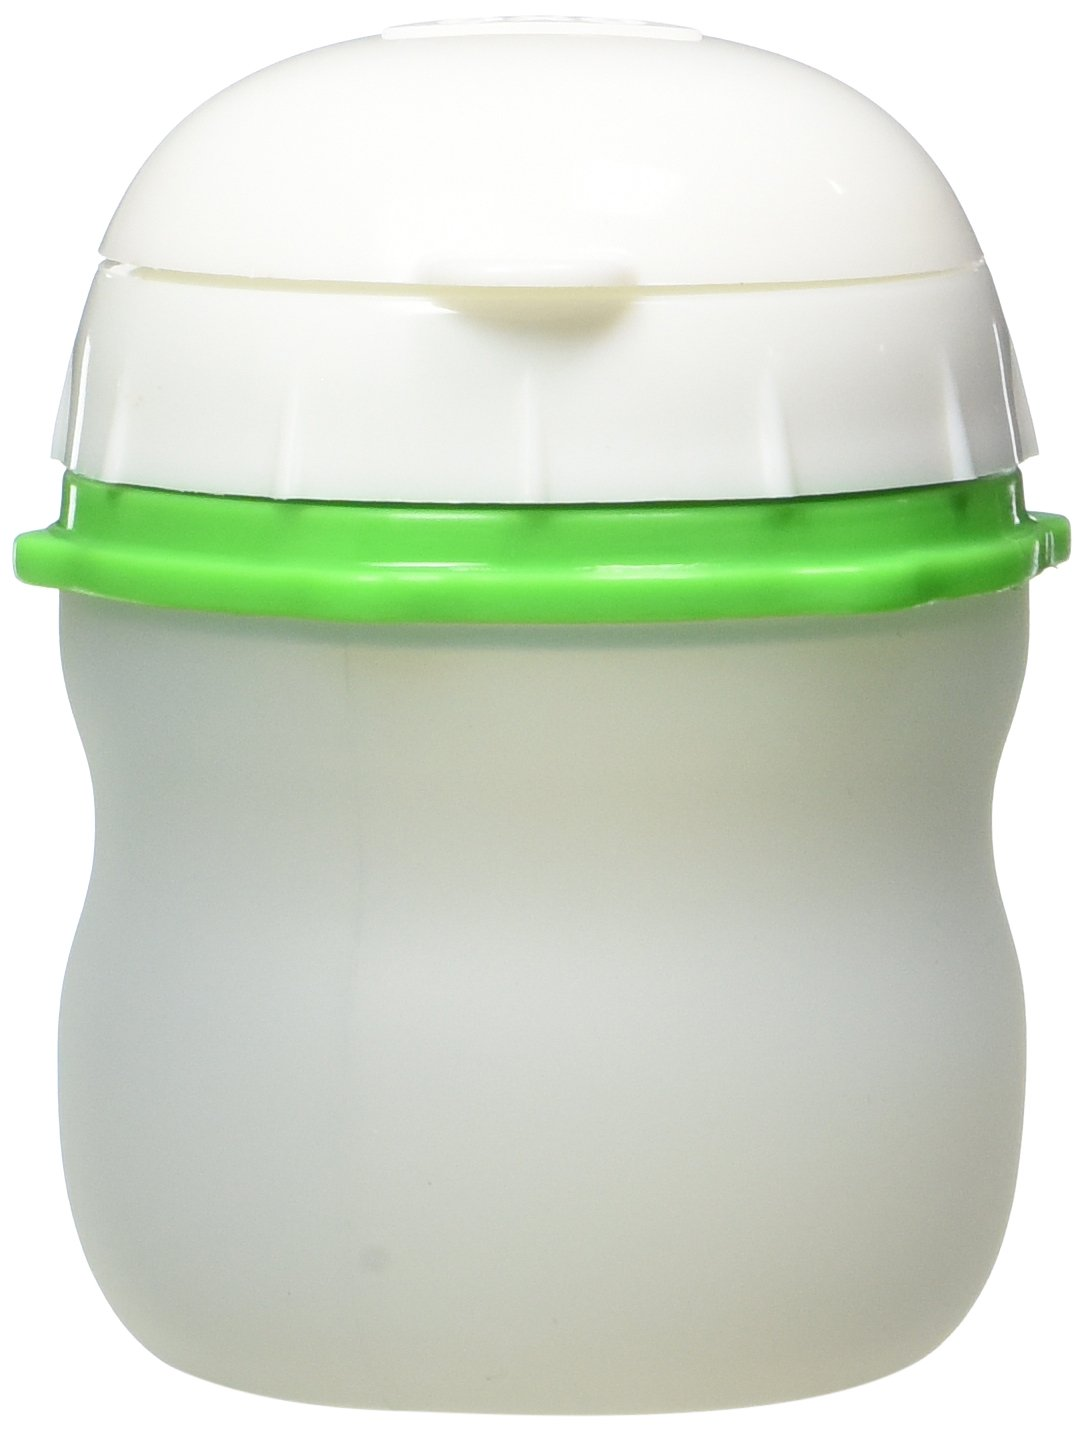 OXO Good Grips On-the-Go Silicone Squeeze Bottle (1 Pack), Green 11152900